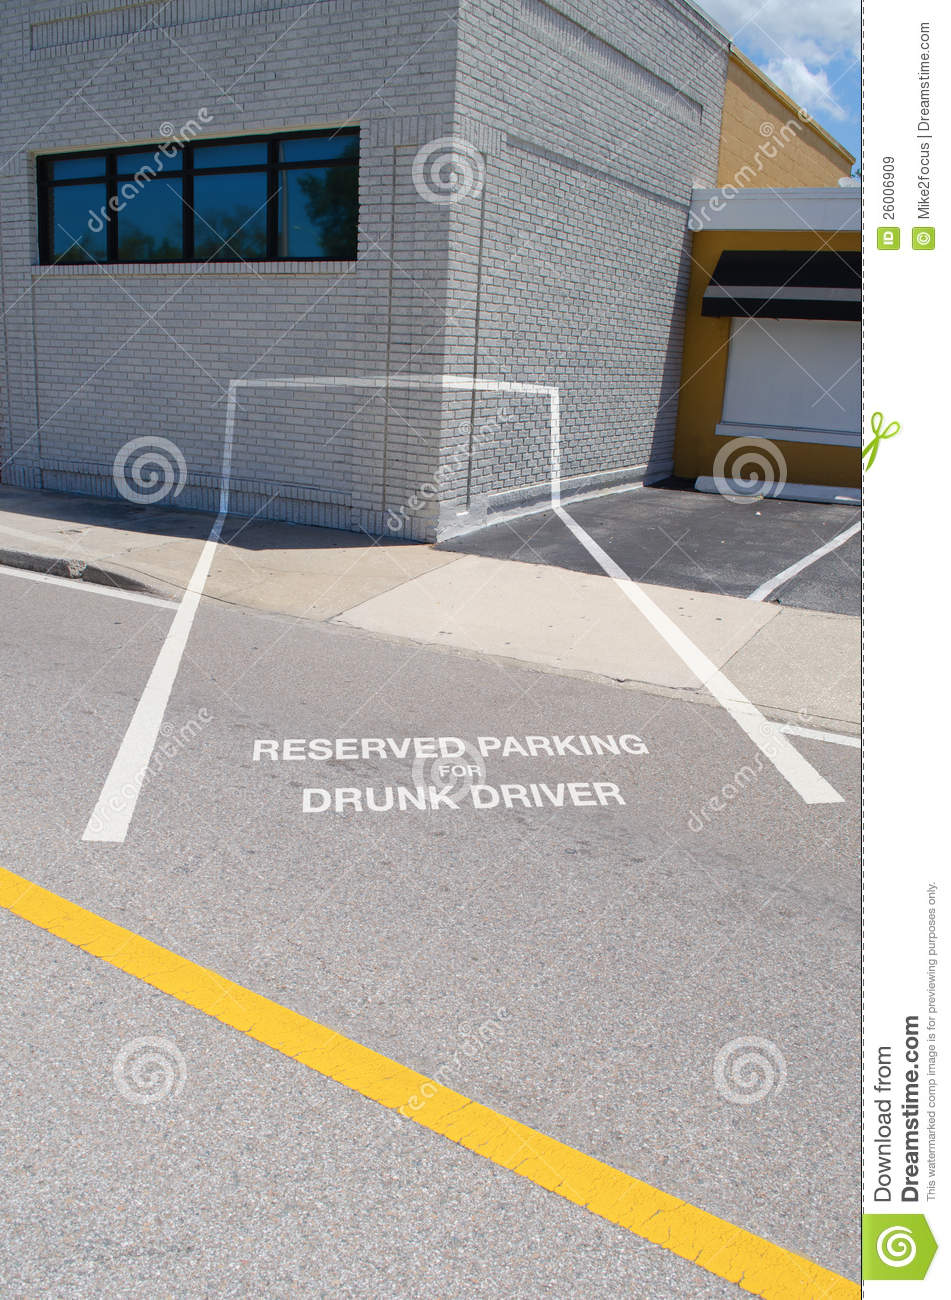 Reserved Parking For Drunk Driver Spot Which Is Painted Into The